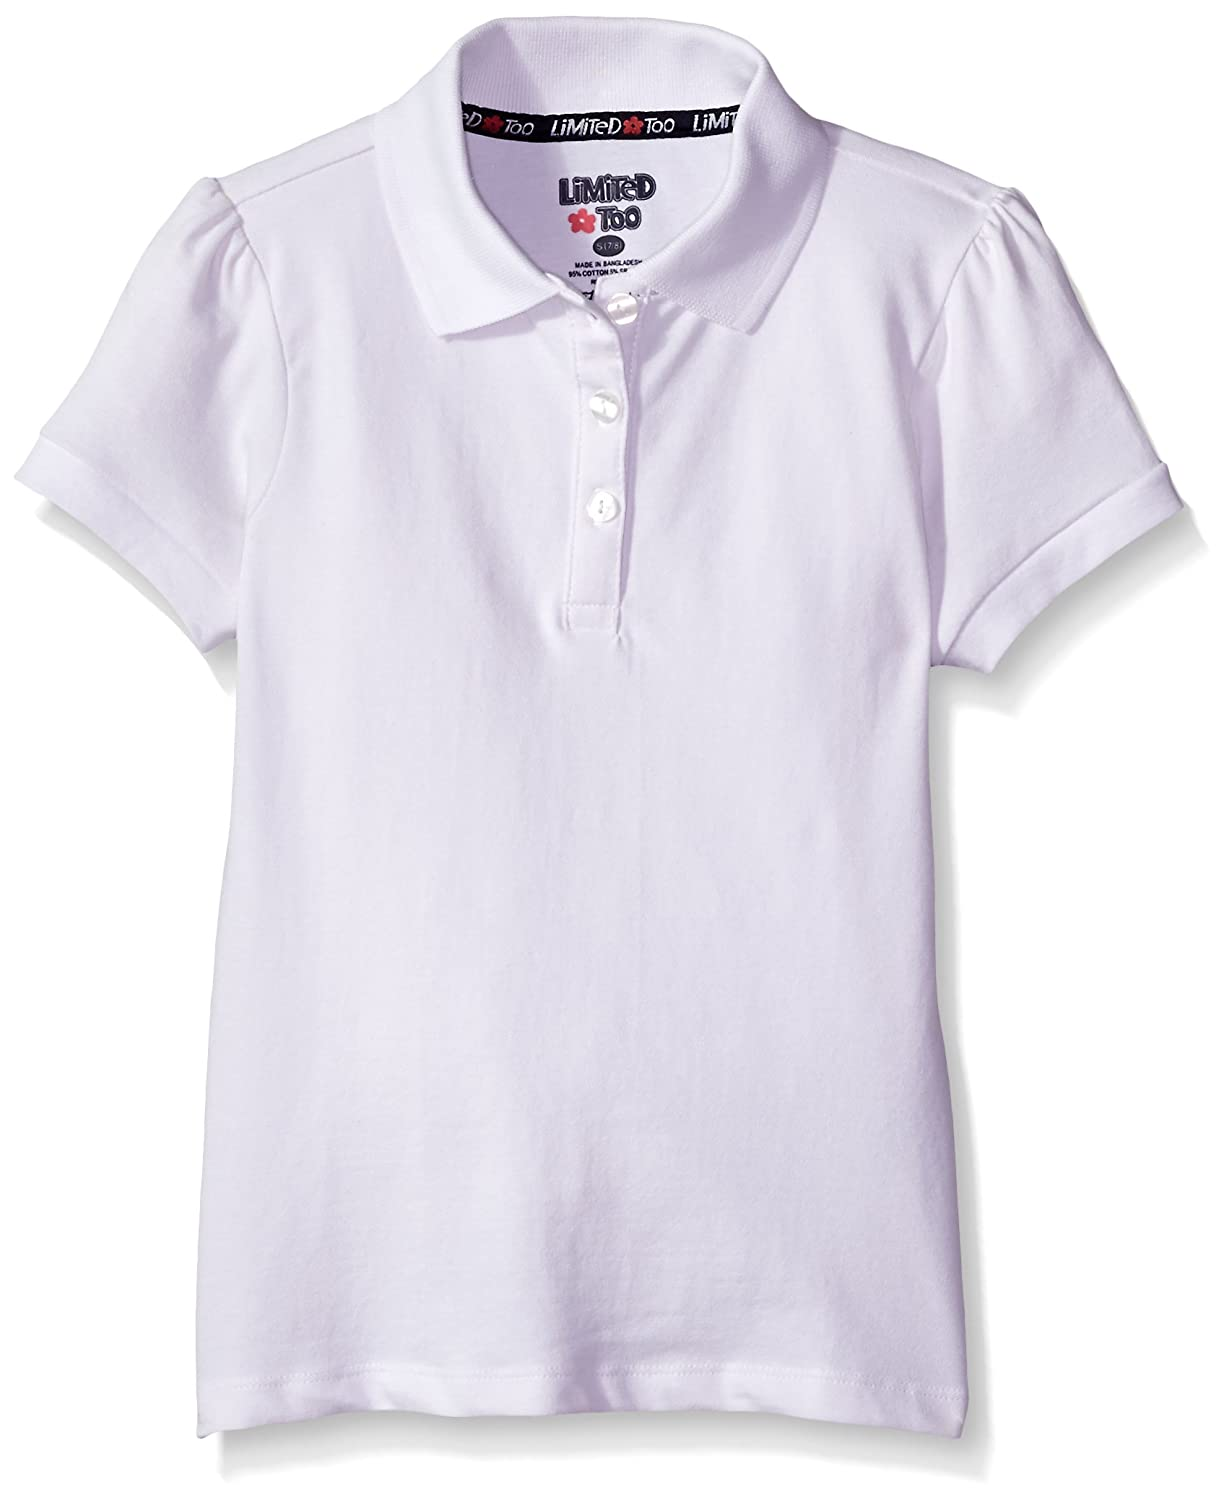 14//16 Limited Too Girls Polo Shirt Bright White More Styles Available